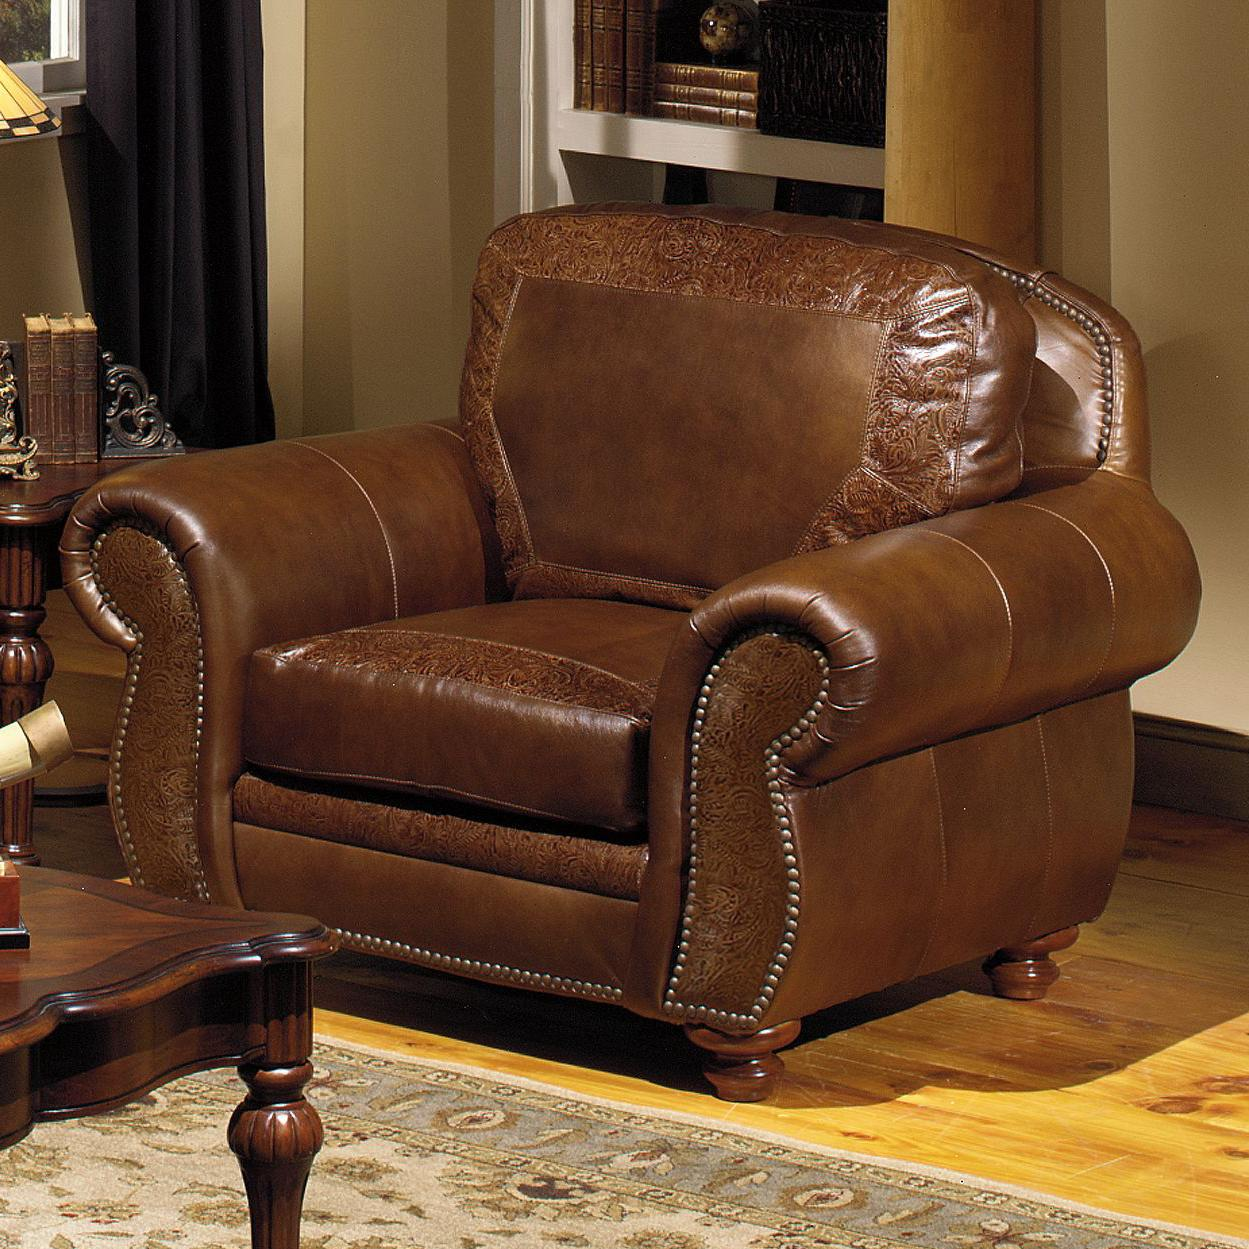 Traditional Leather Chair with Nailhead Trim by USA